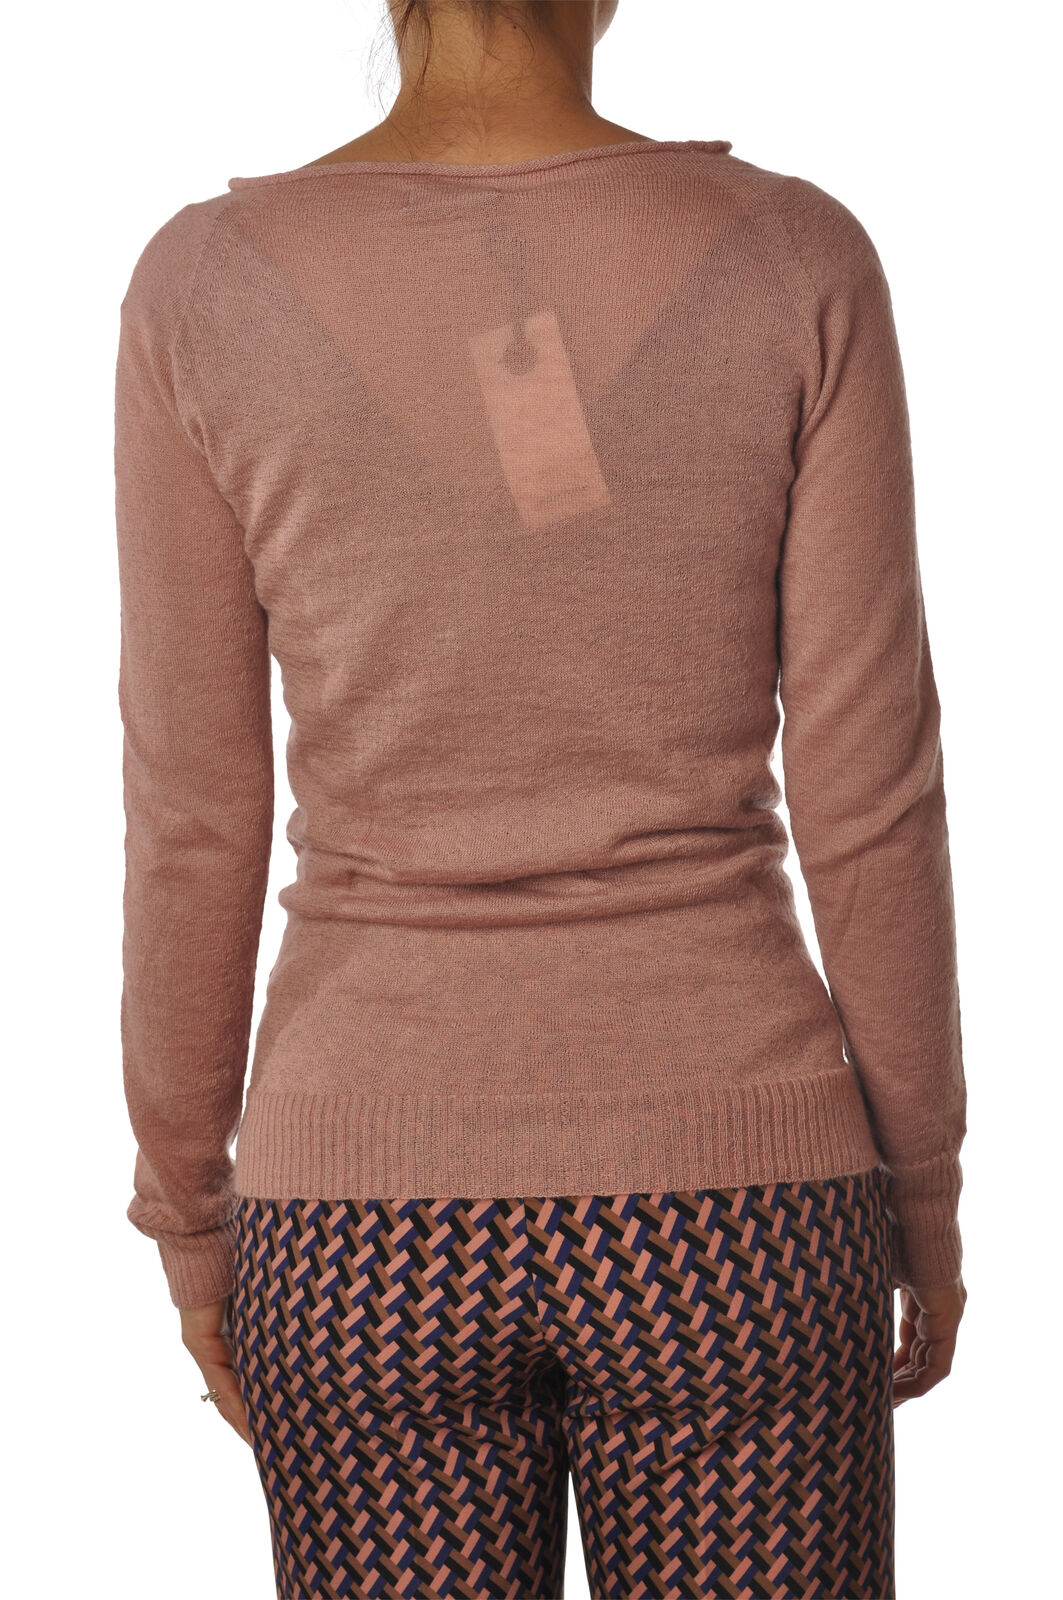 Ottod'ame Ottod'ame Ottod'ame - Knitwear-Sweaters - Woman - Pink - 5432624N180705 a1082d